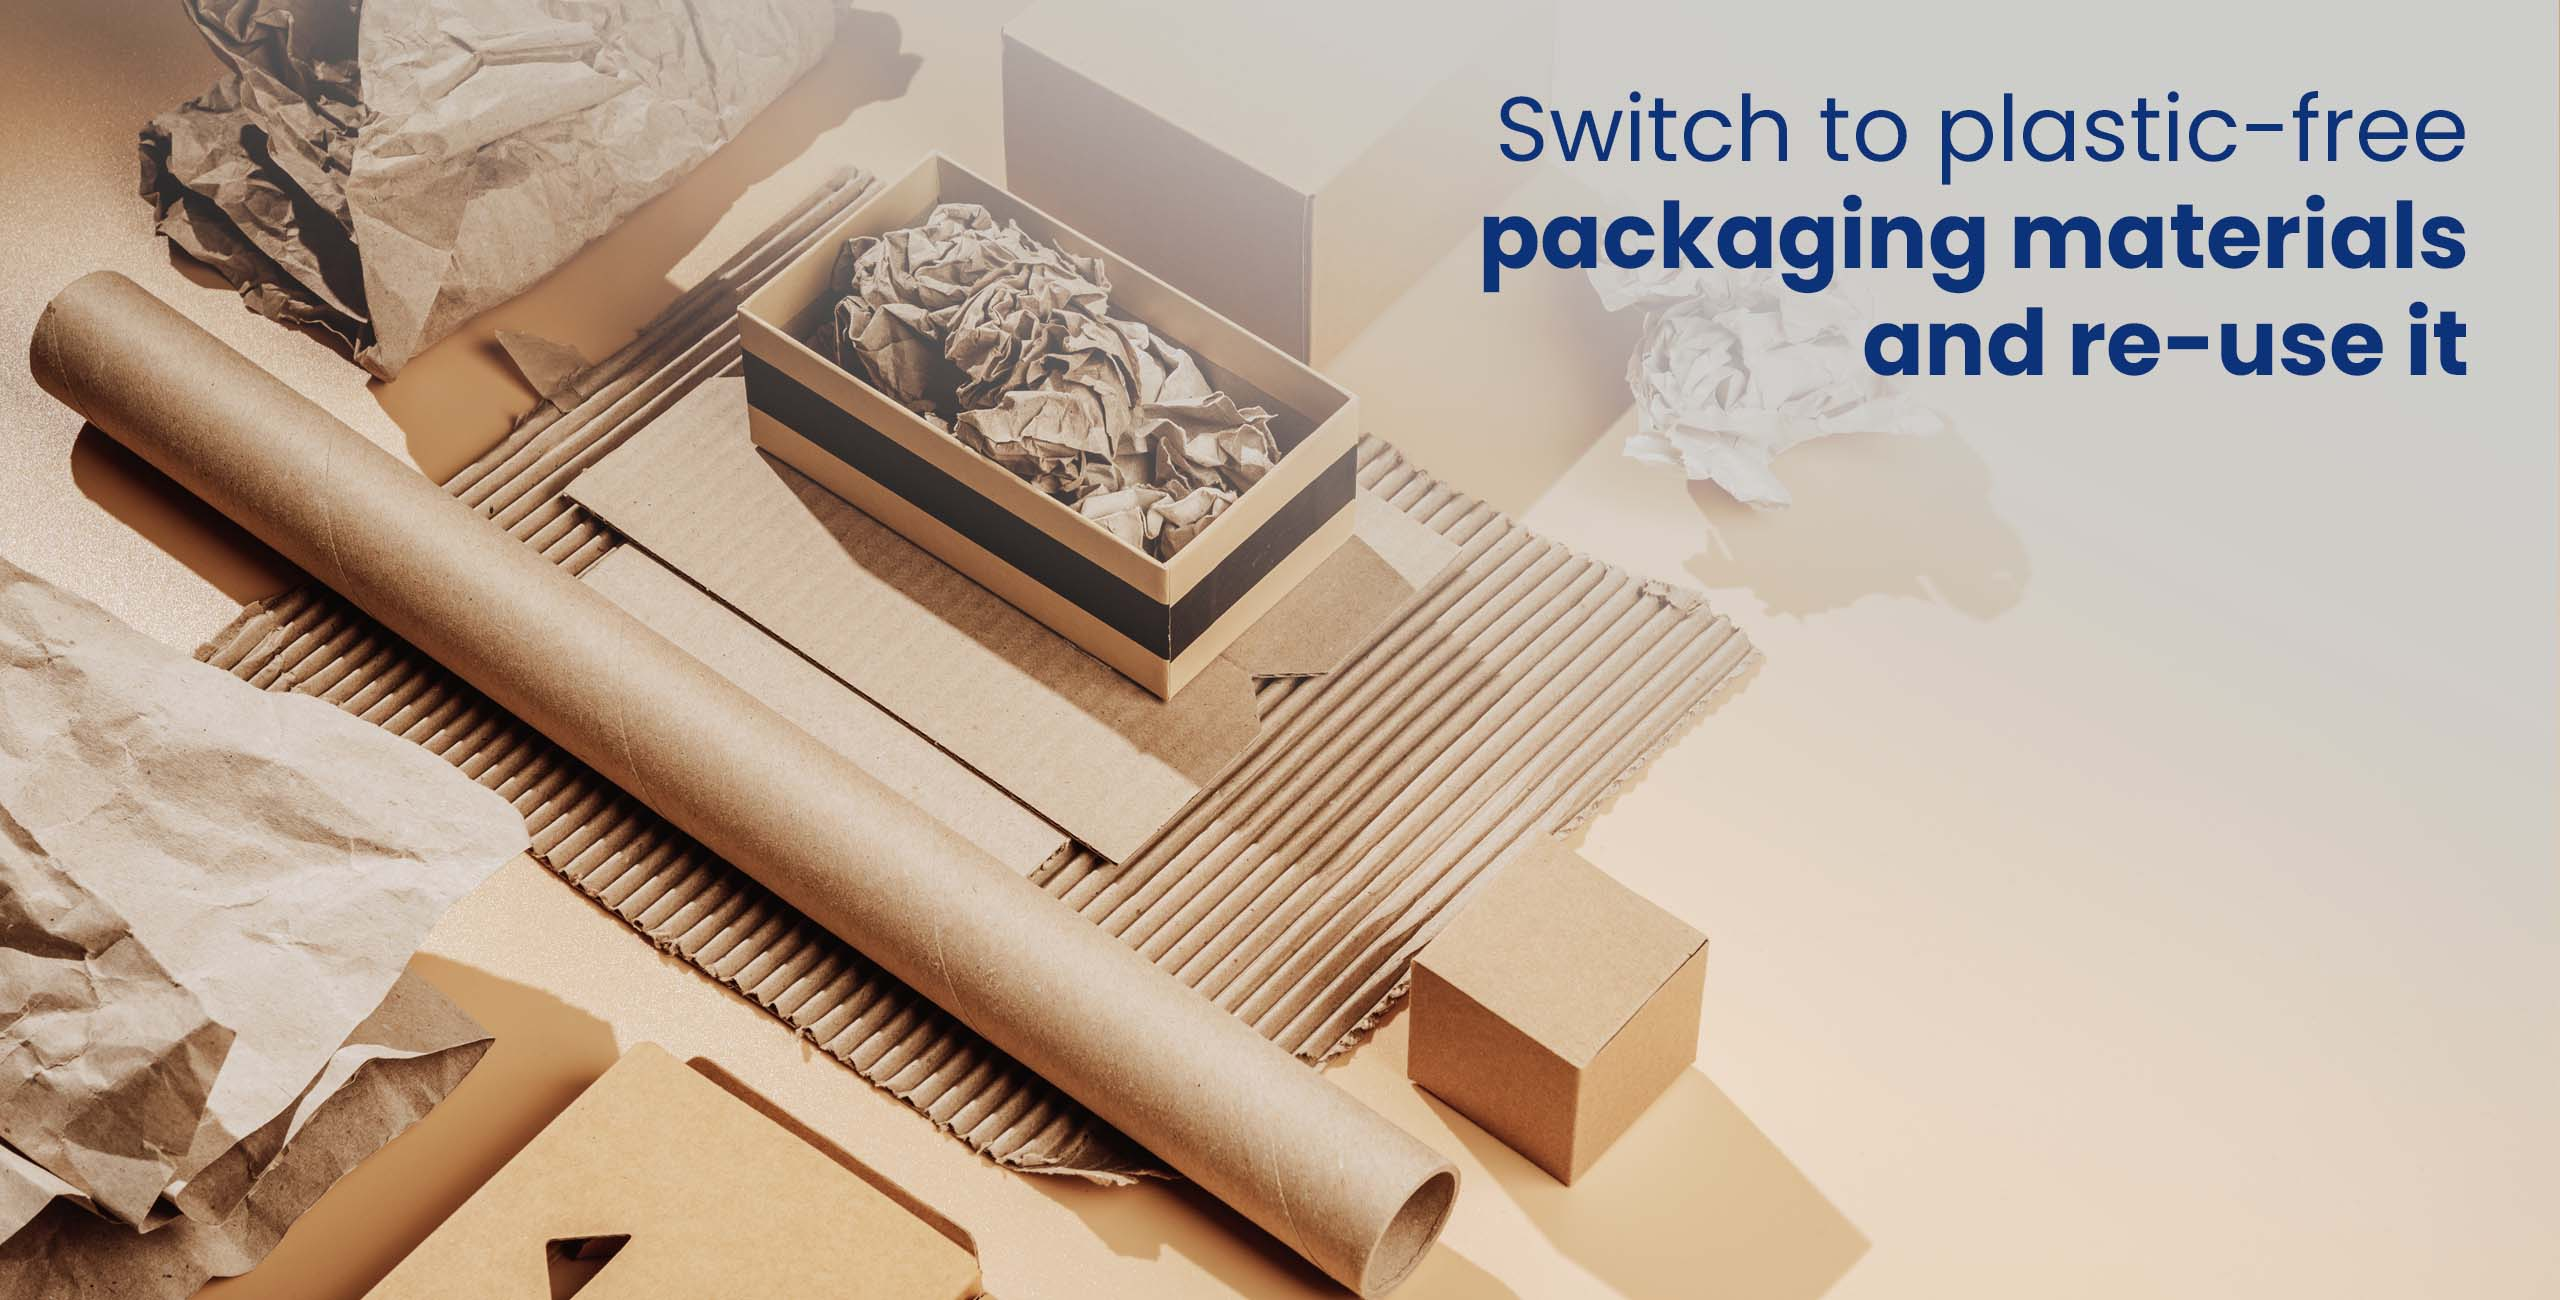 sustainable packaging for package shipping